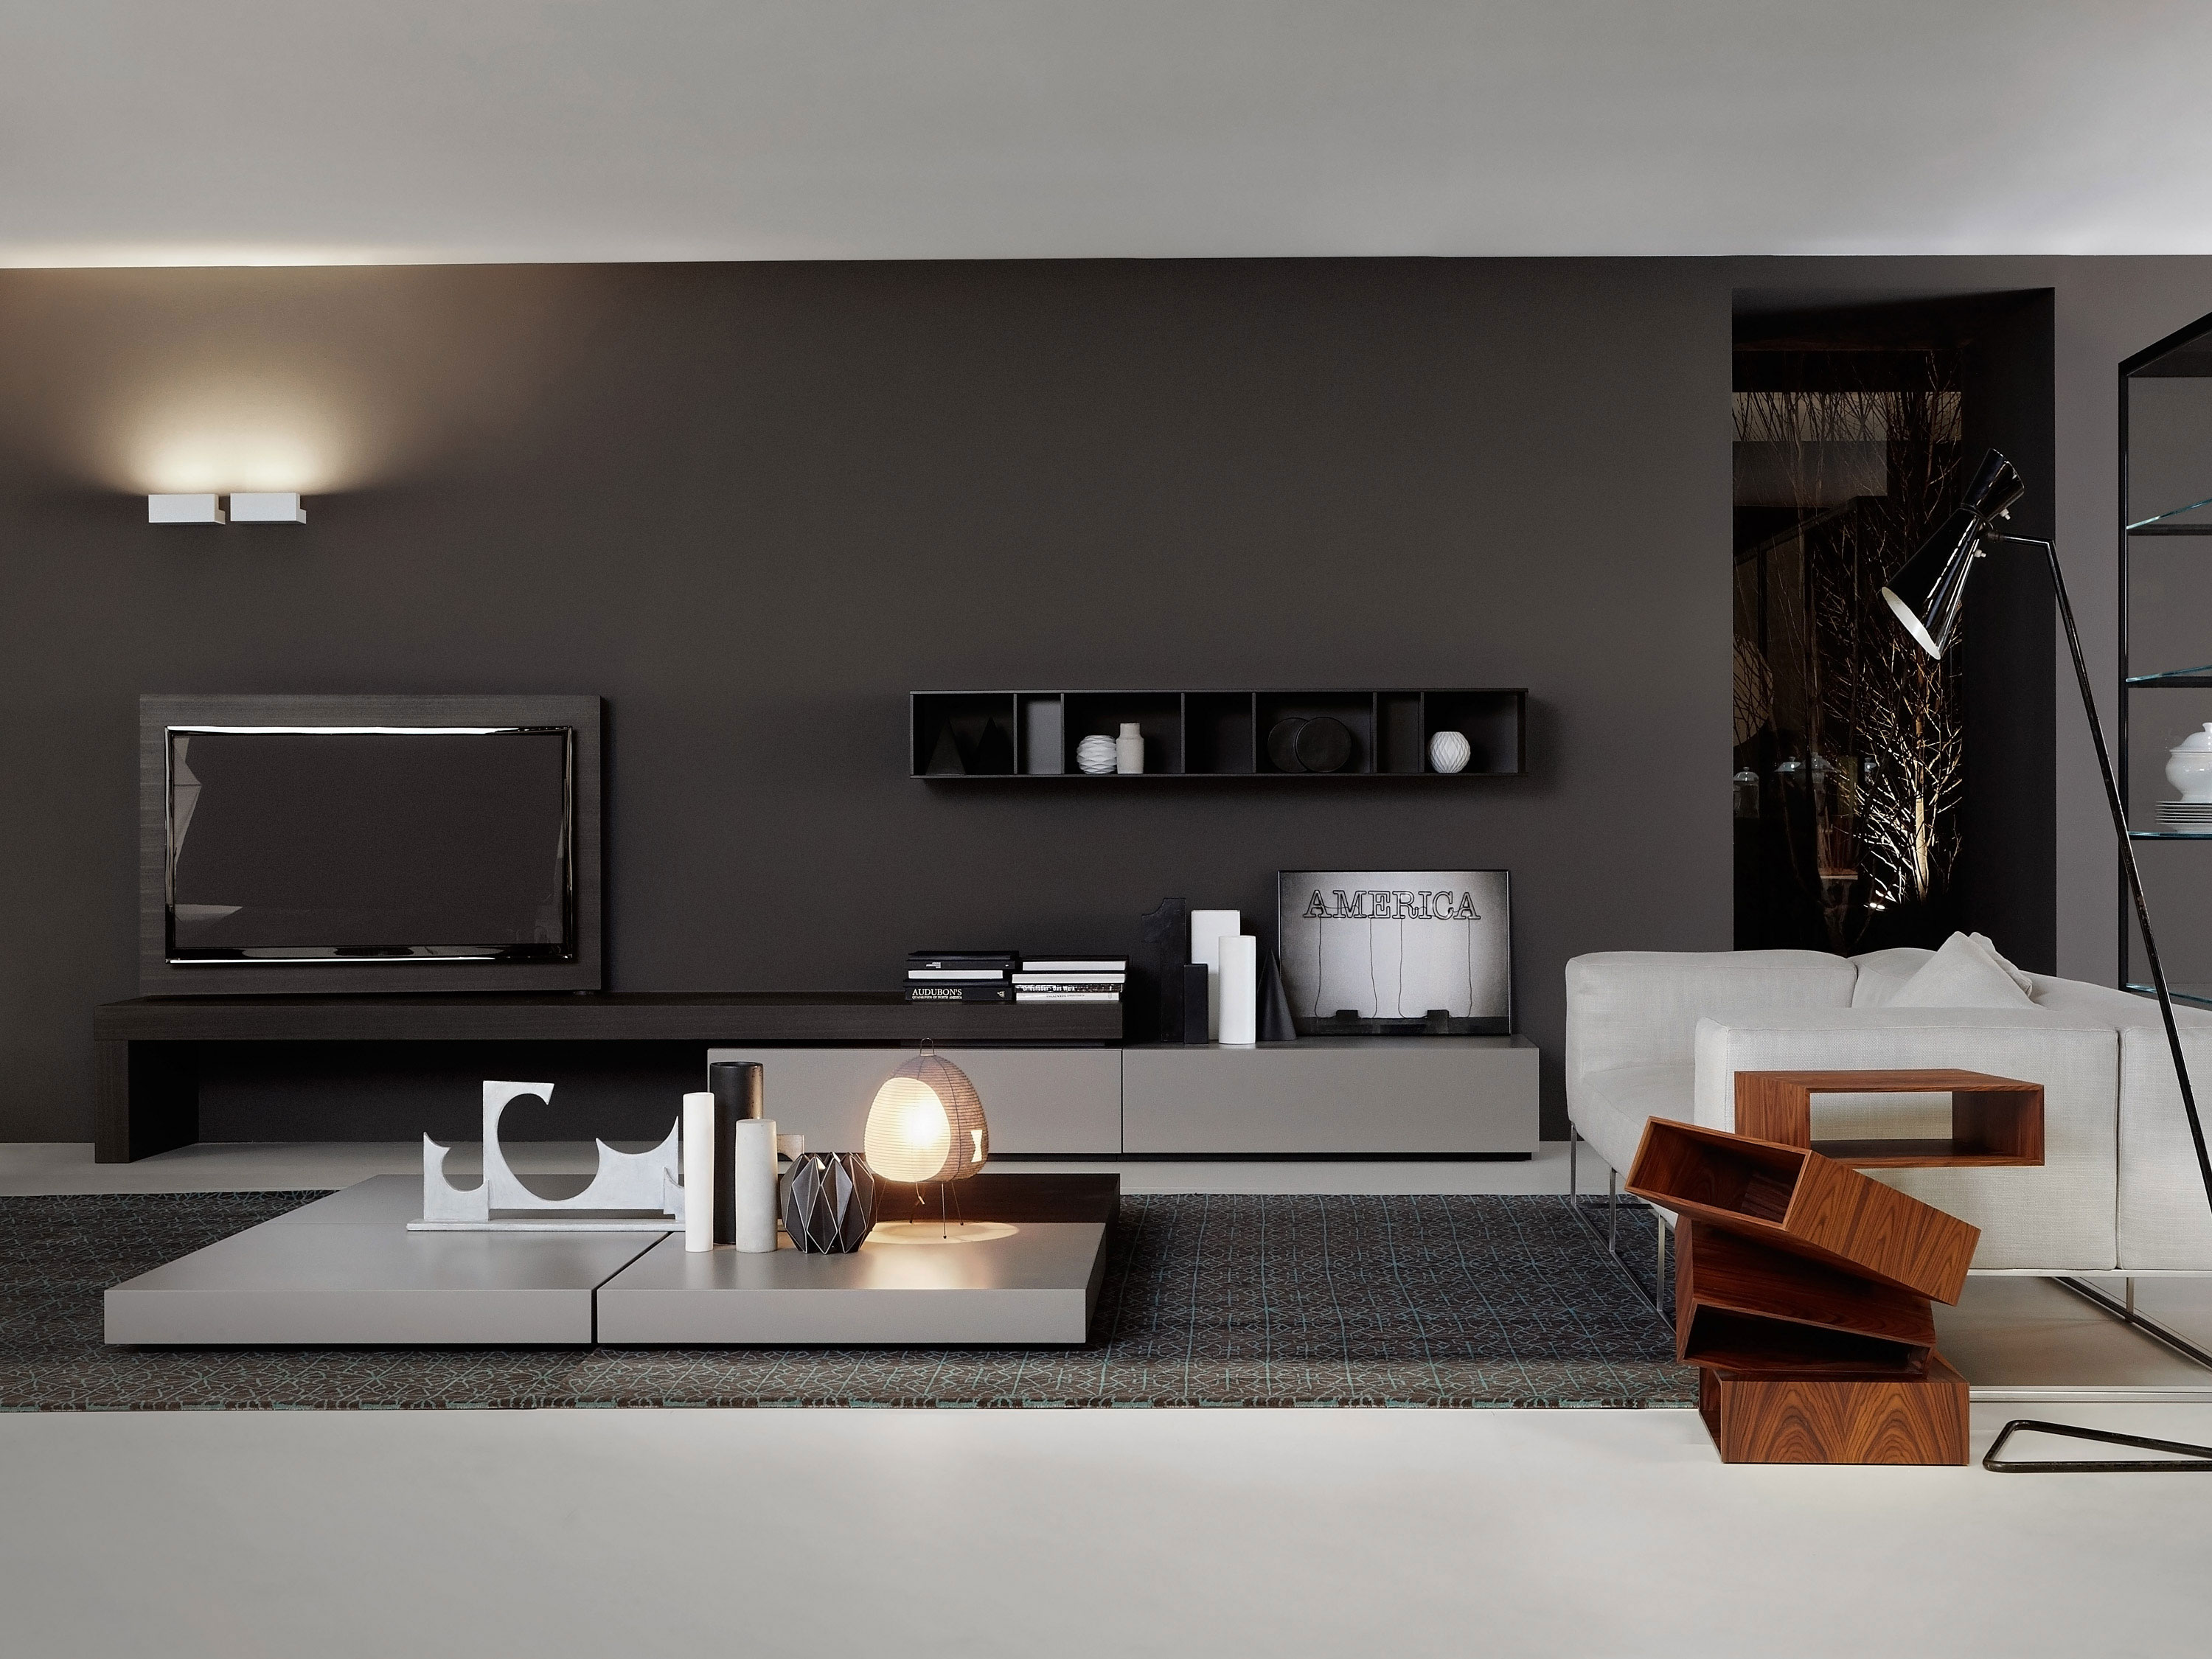 Porro Spa Living Tv Hi Fi Tv Wall Unit Pinterest Spa  # Tables Tele Moderne